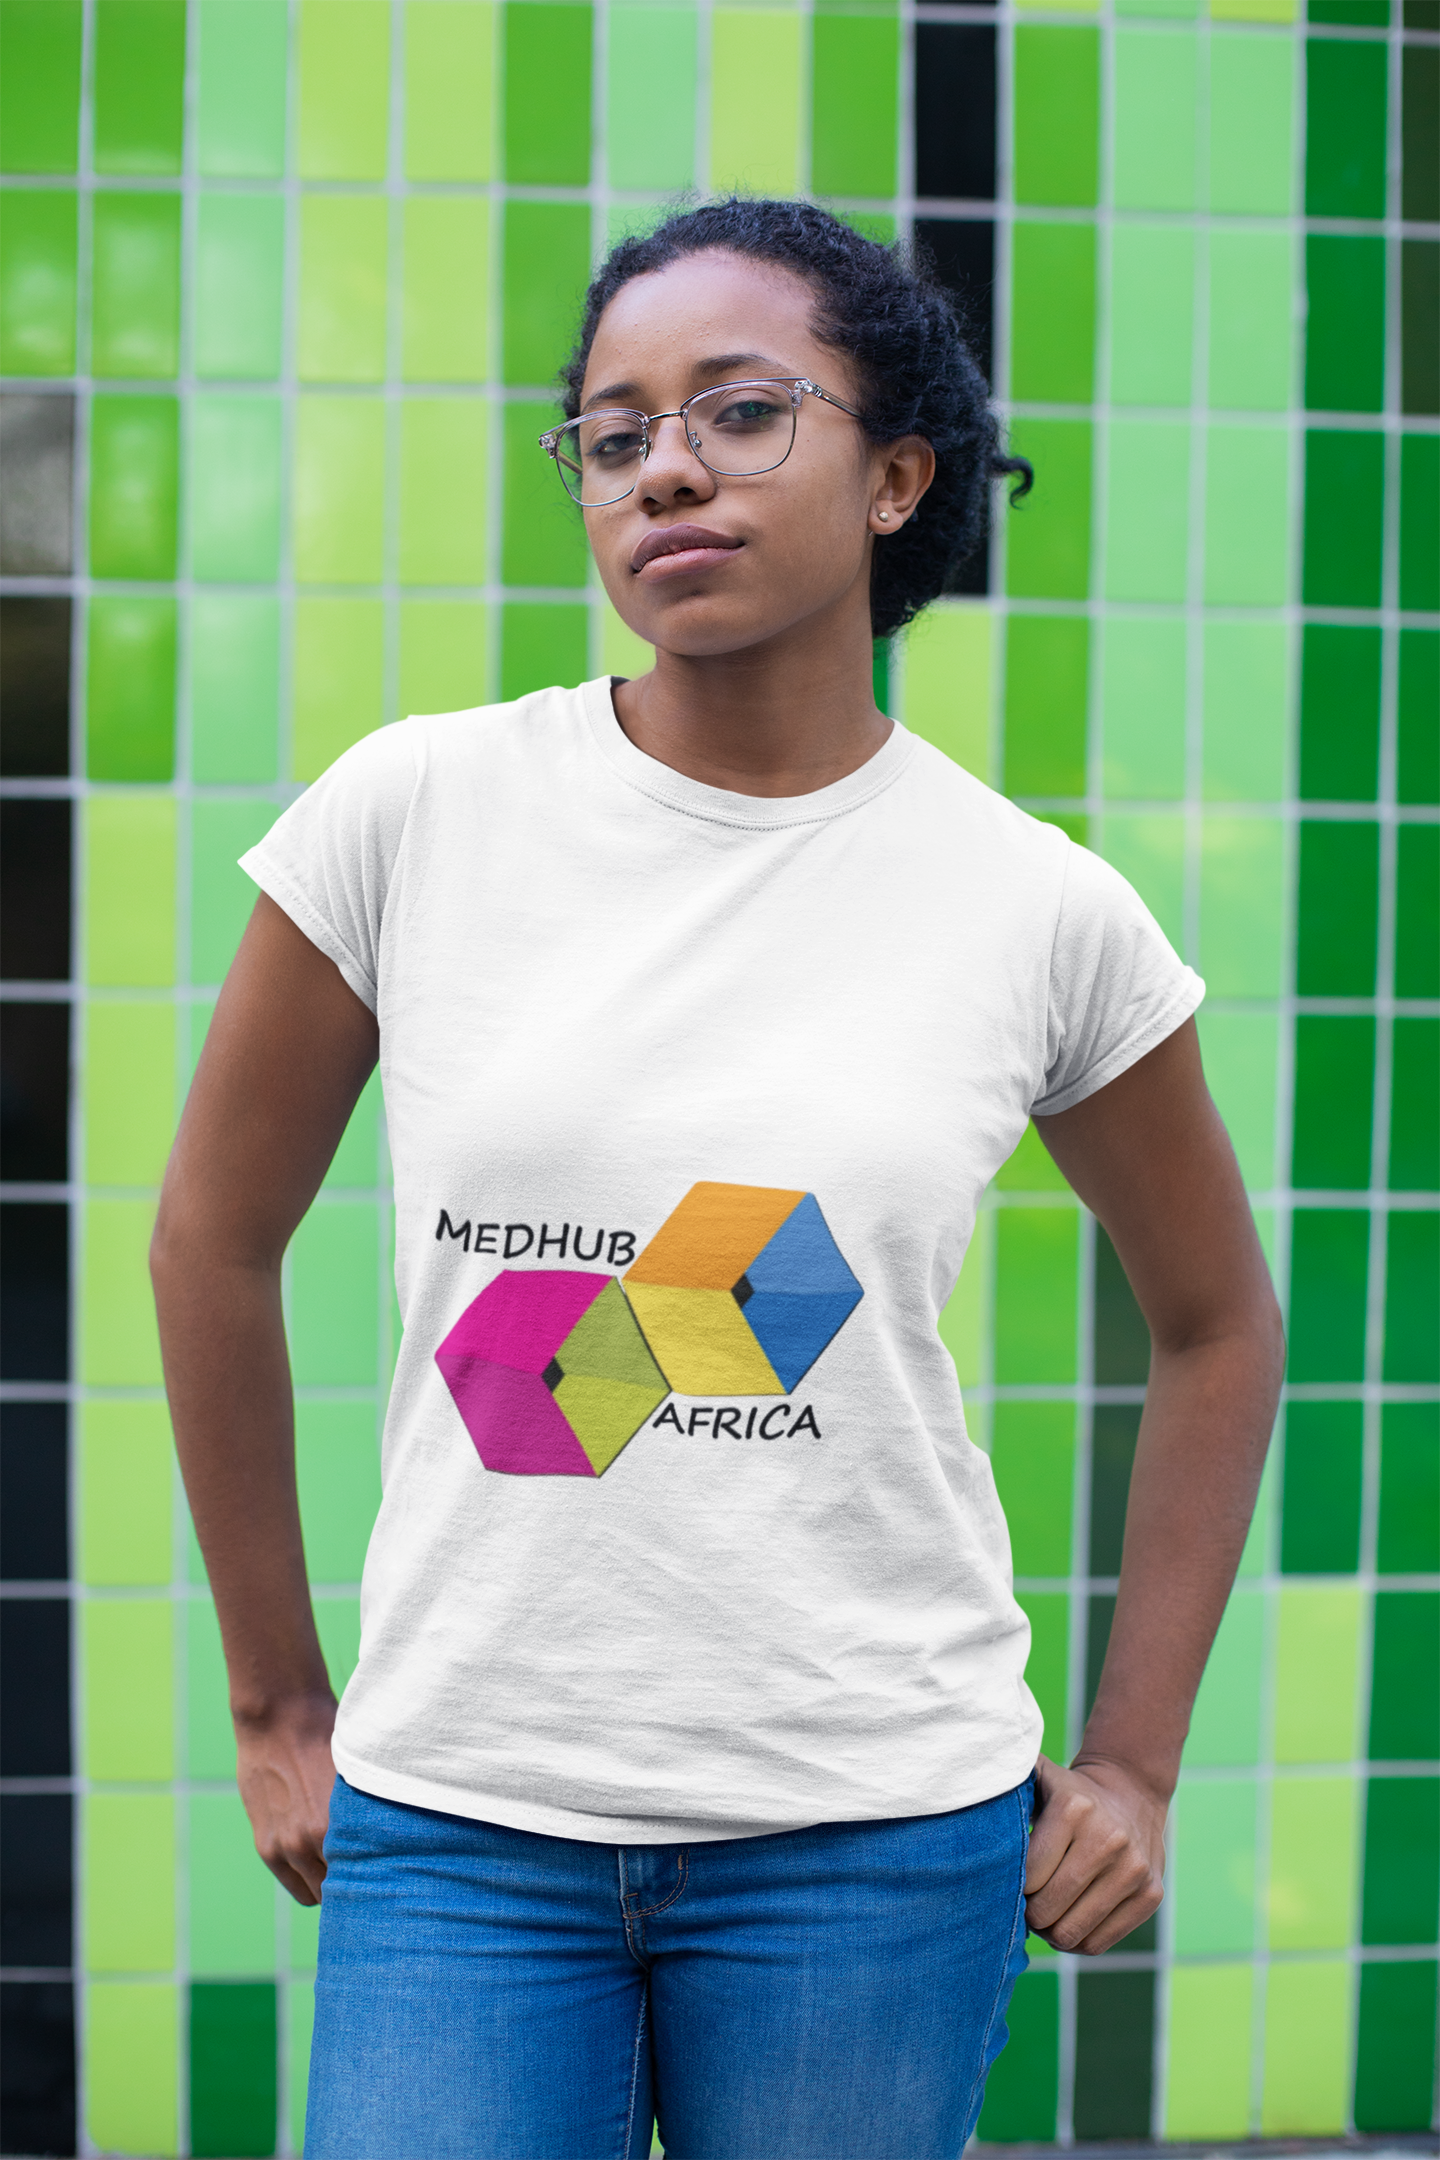 t-shirt-mockup-of-a-girl-with-glasses-standing-in-front-of-a-green-mosaic-24100 (1)